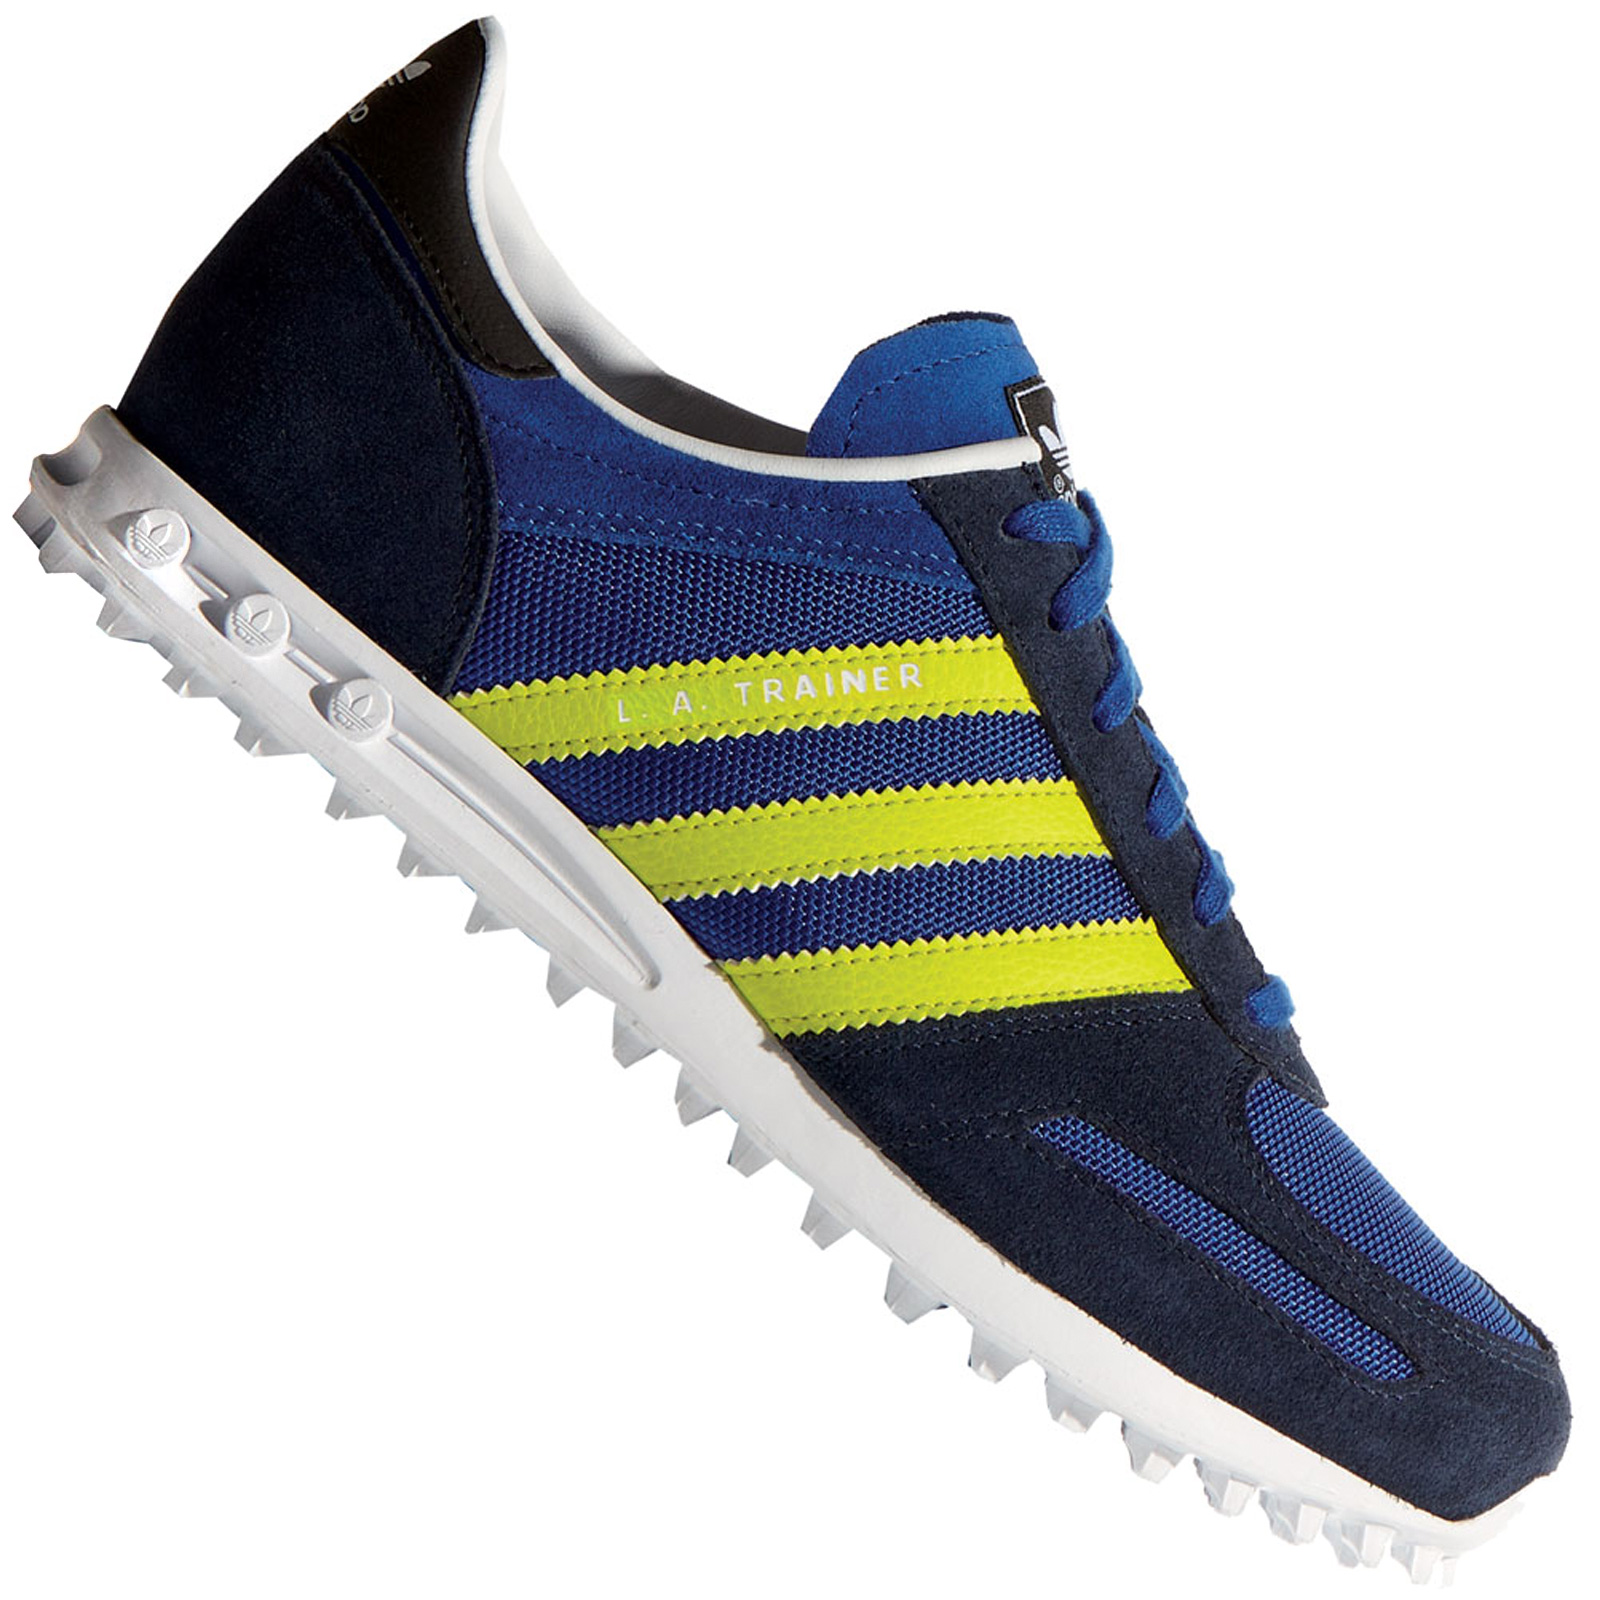 Details about Adidas Originals La Trainer Women's Sneakers Casual Shoes Navy Blue Yellow